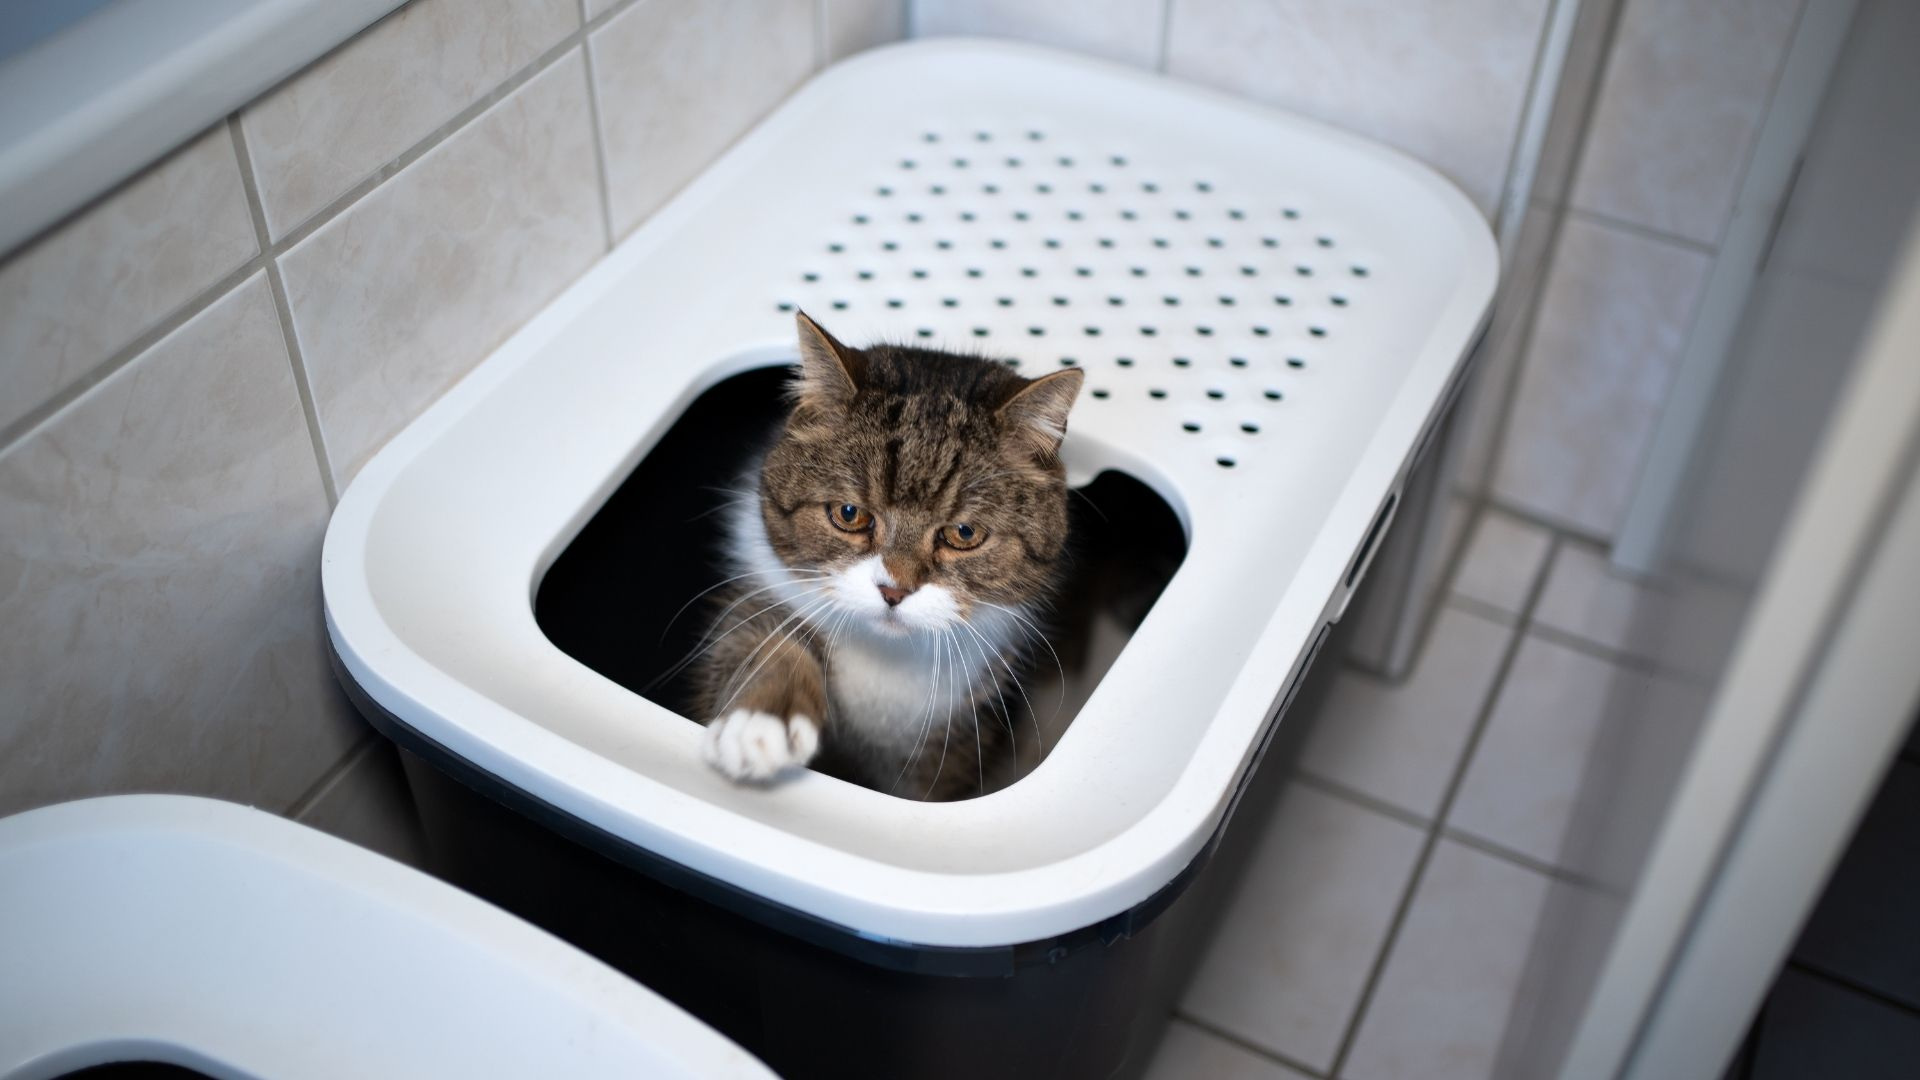 What Should I Do for My Constipated Cat?